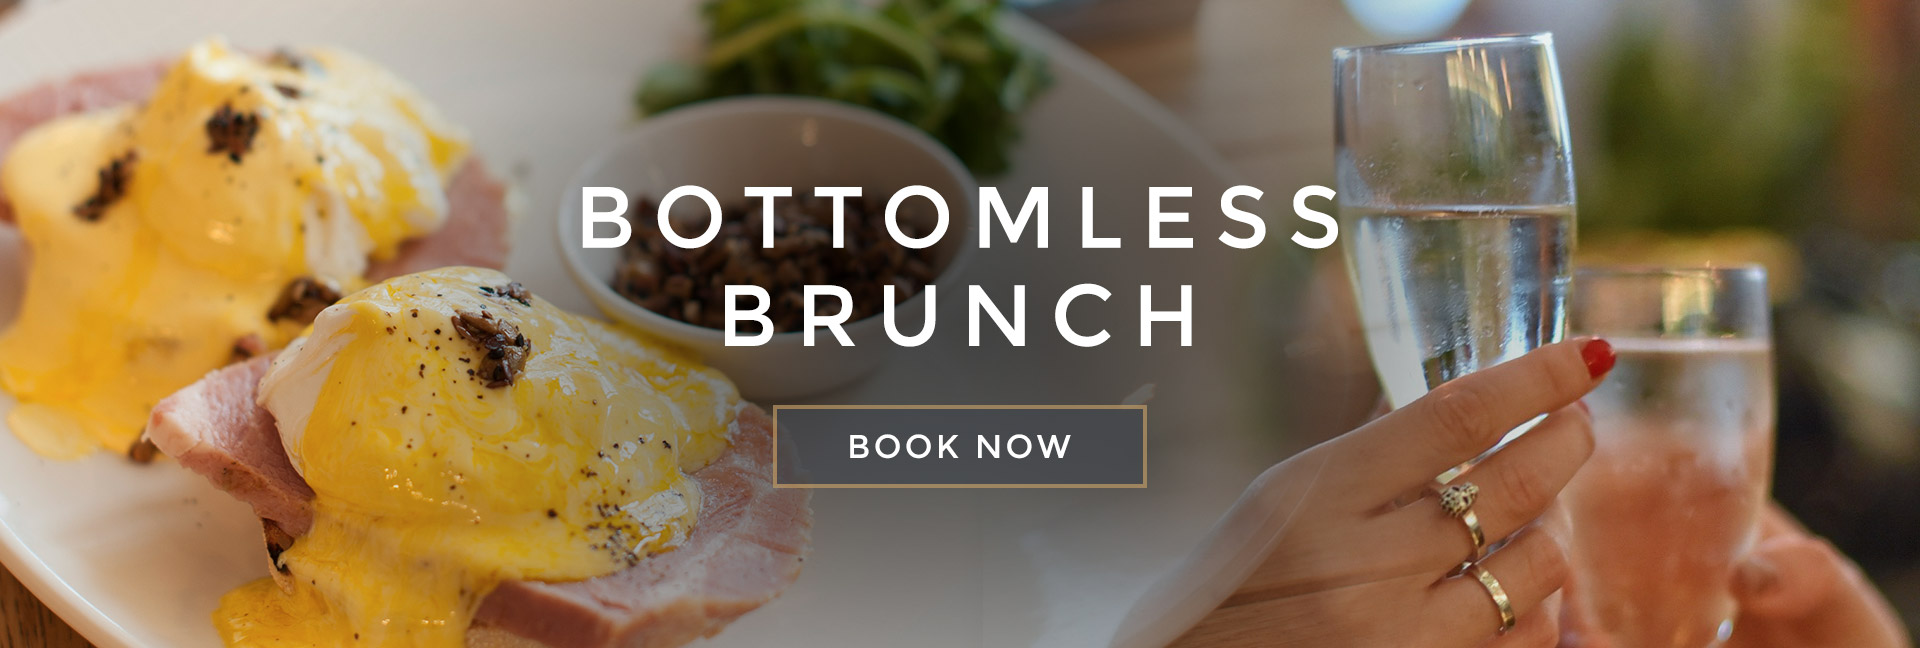 Bottomless Brunch at All Bar One Greek Street Leeds - Book now